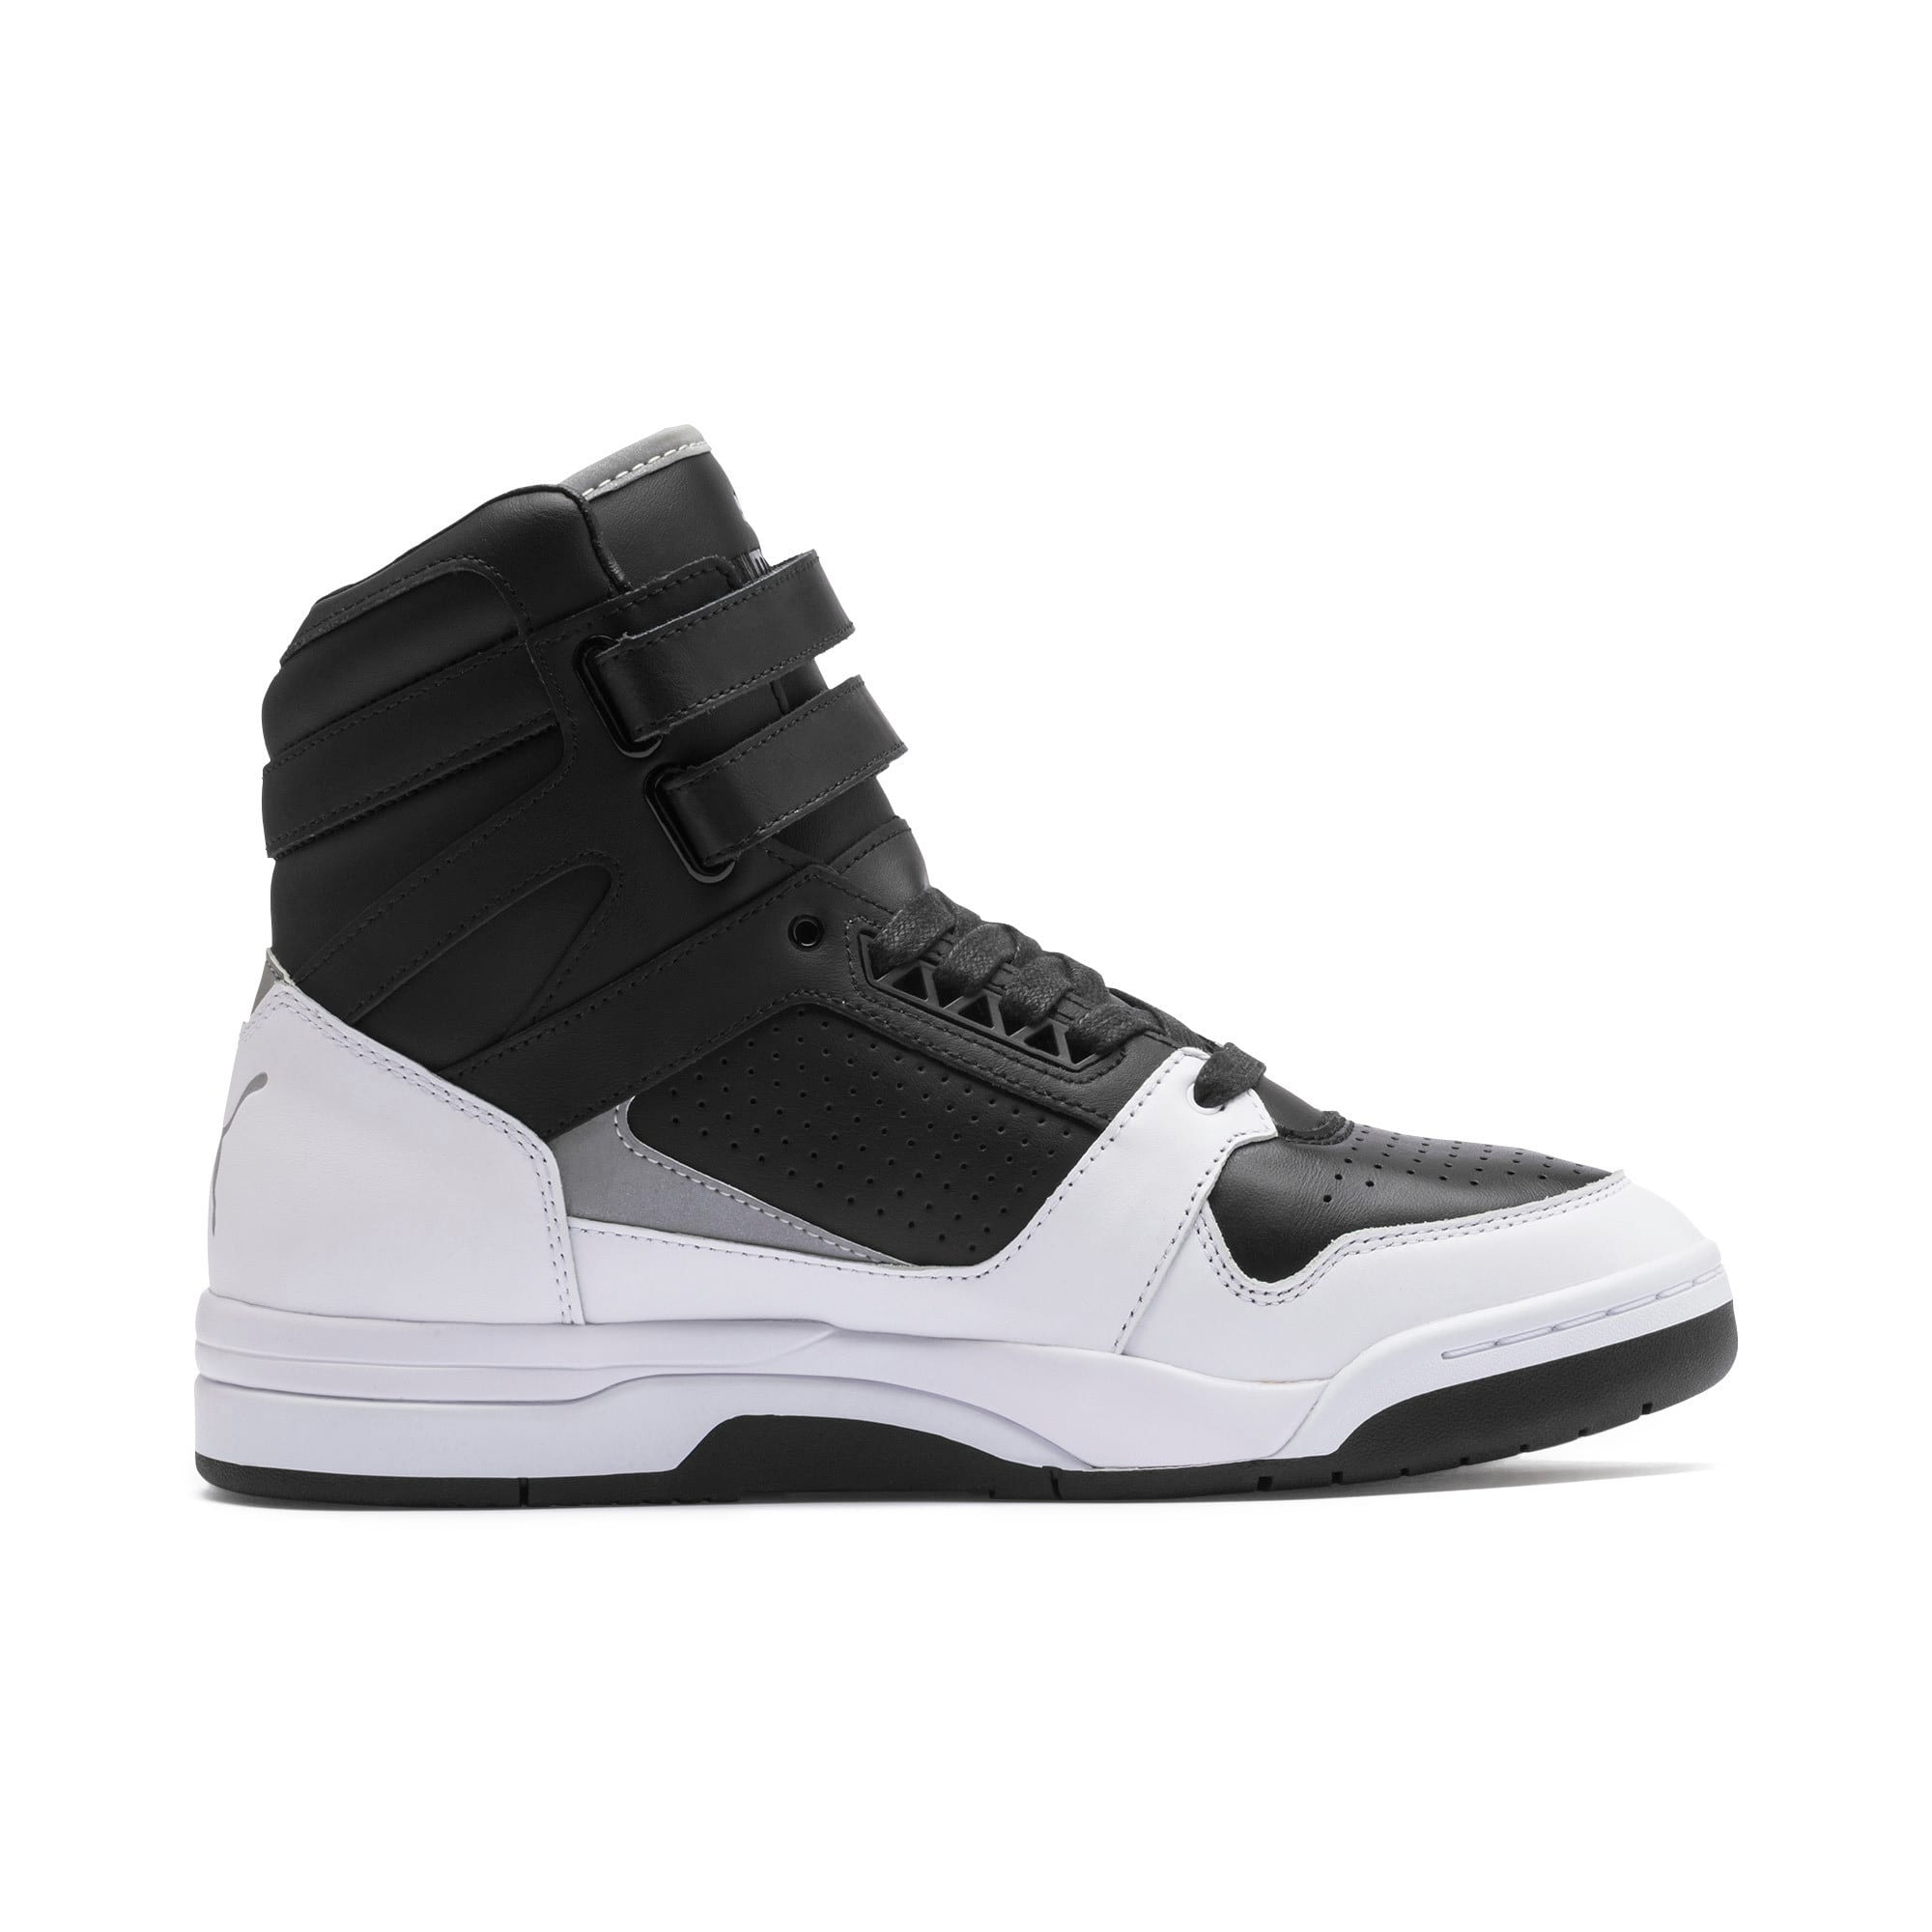 Thumbnail 5 of Palace Guard Mid Moto-X Sneakers, Puma Black-Puma Silver-, medium